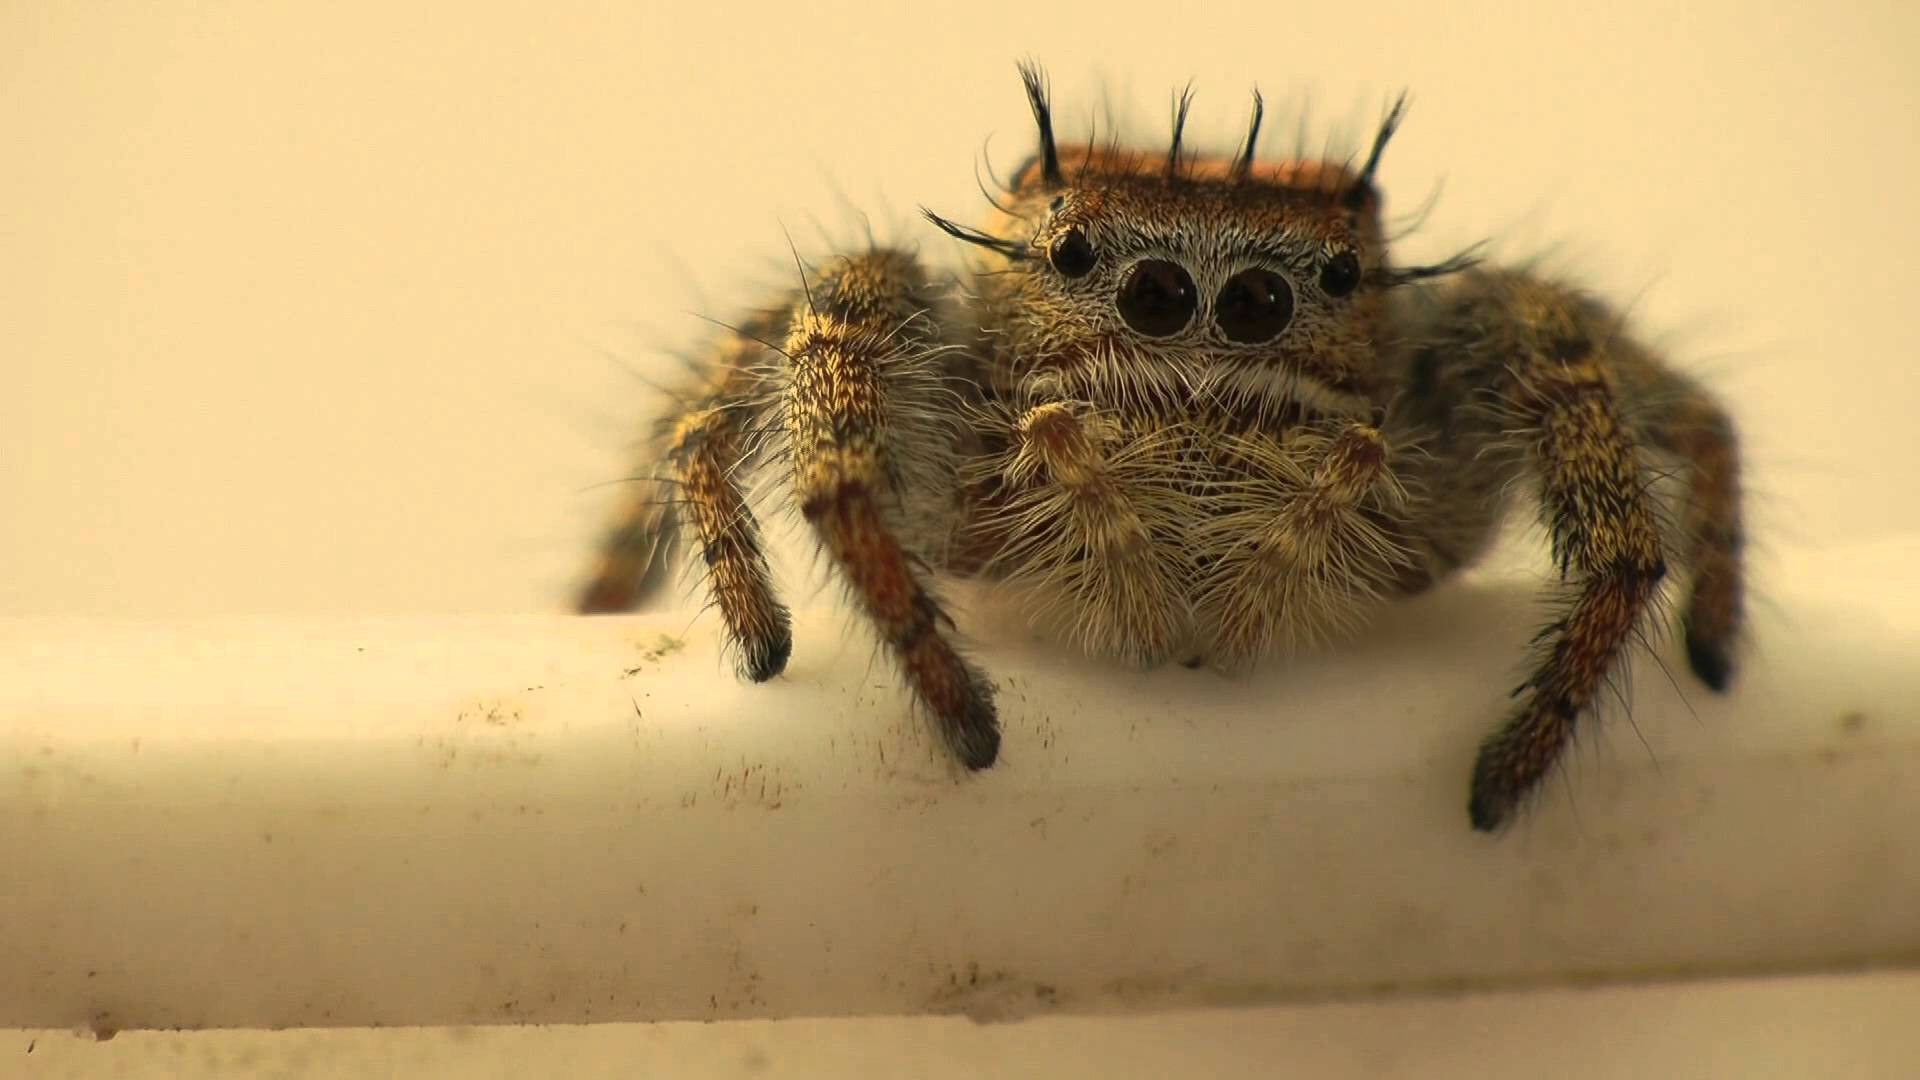 Who Knew? Cute Spiders Exist!